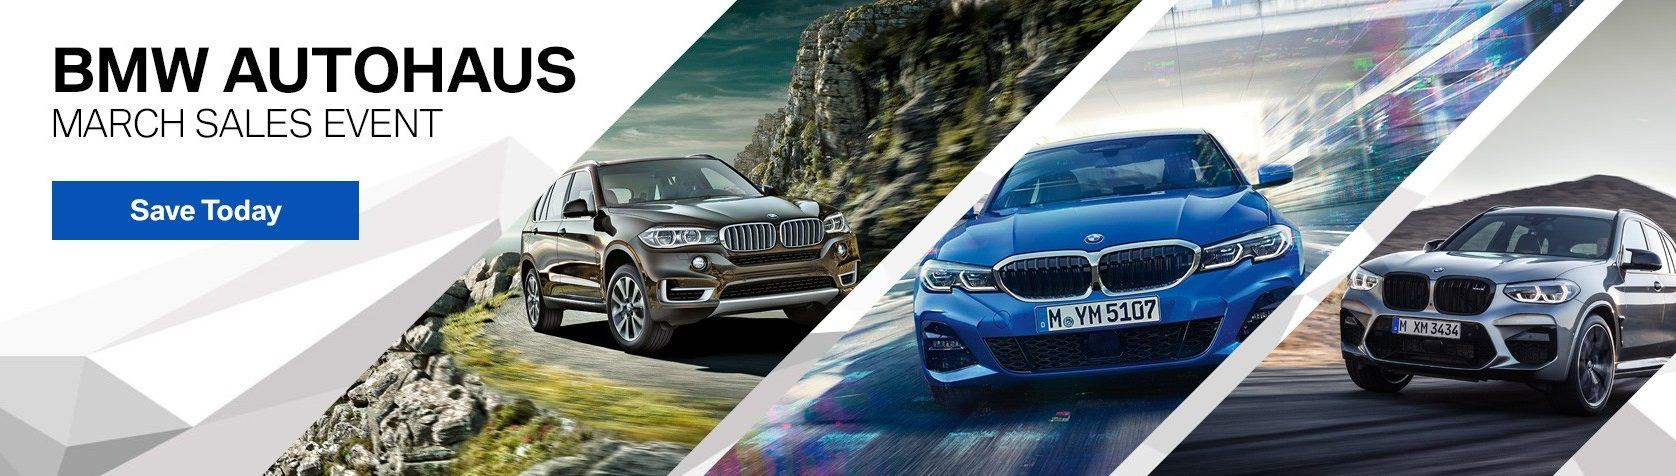 Save During The BMW Autohaus Spring Sales Event in Thornhill, Ontario